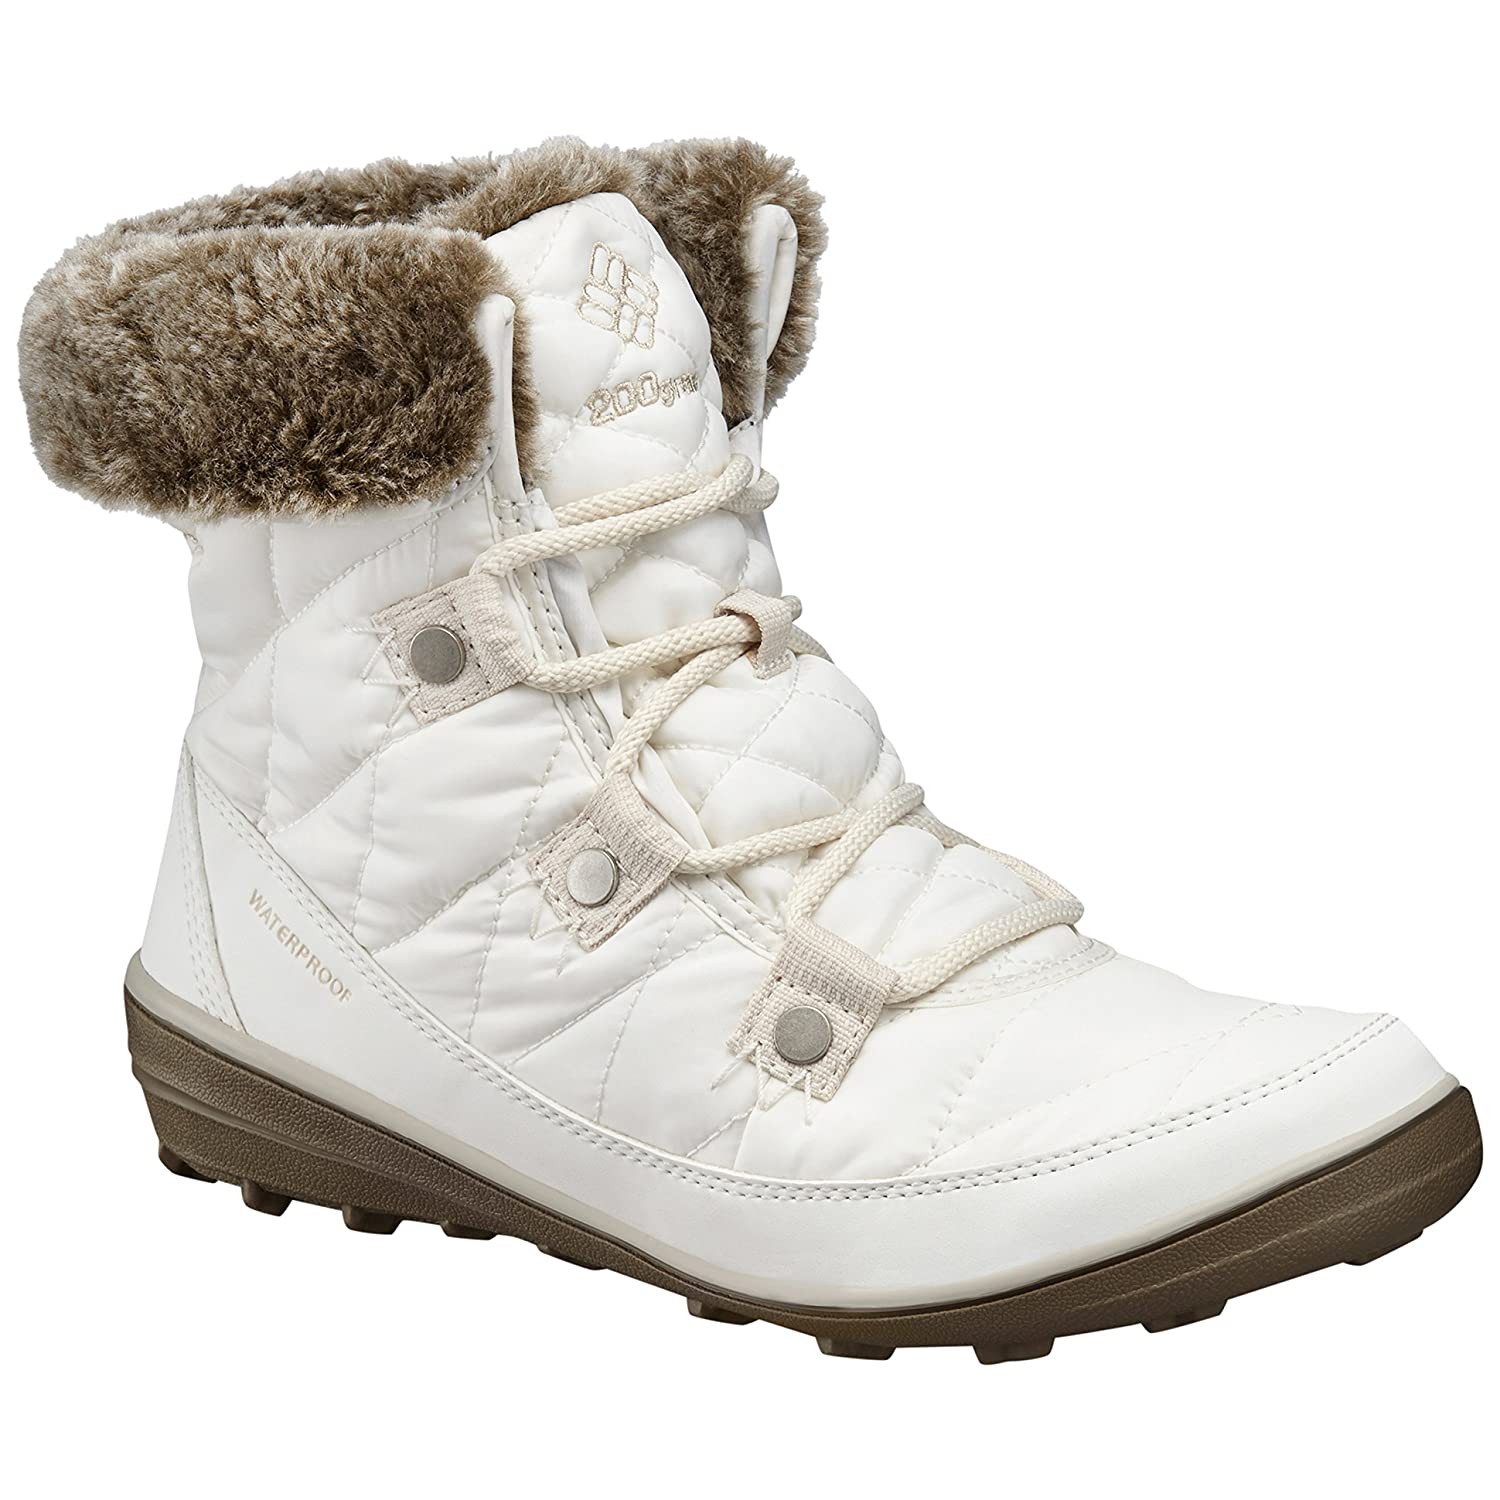 Columbia Women's Heavenly Shorty Omni-Heat Boot B0183M2RFC 8.5 B(M) US|Sea Salt/Fawn